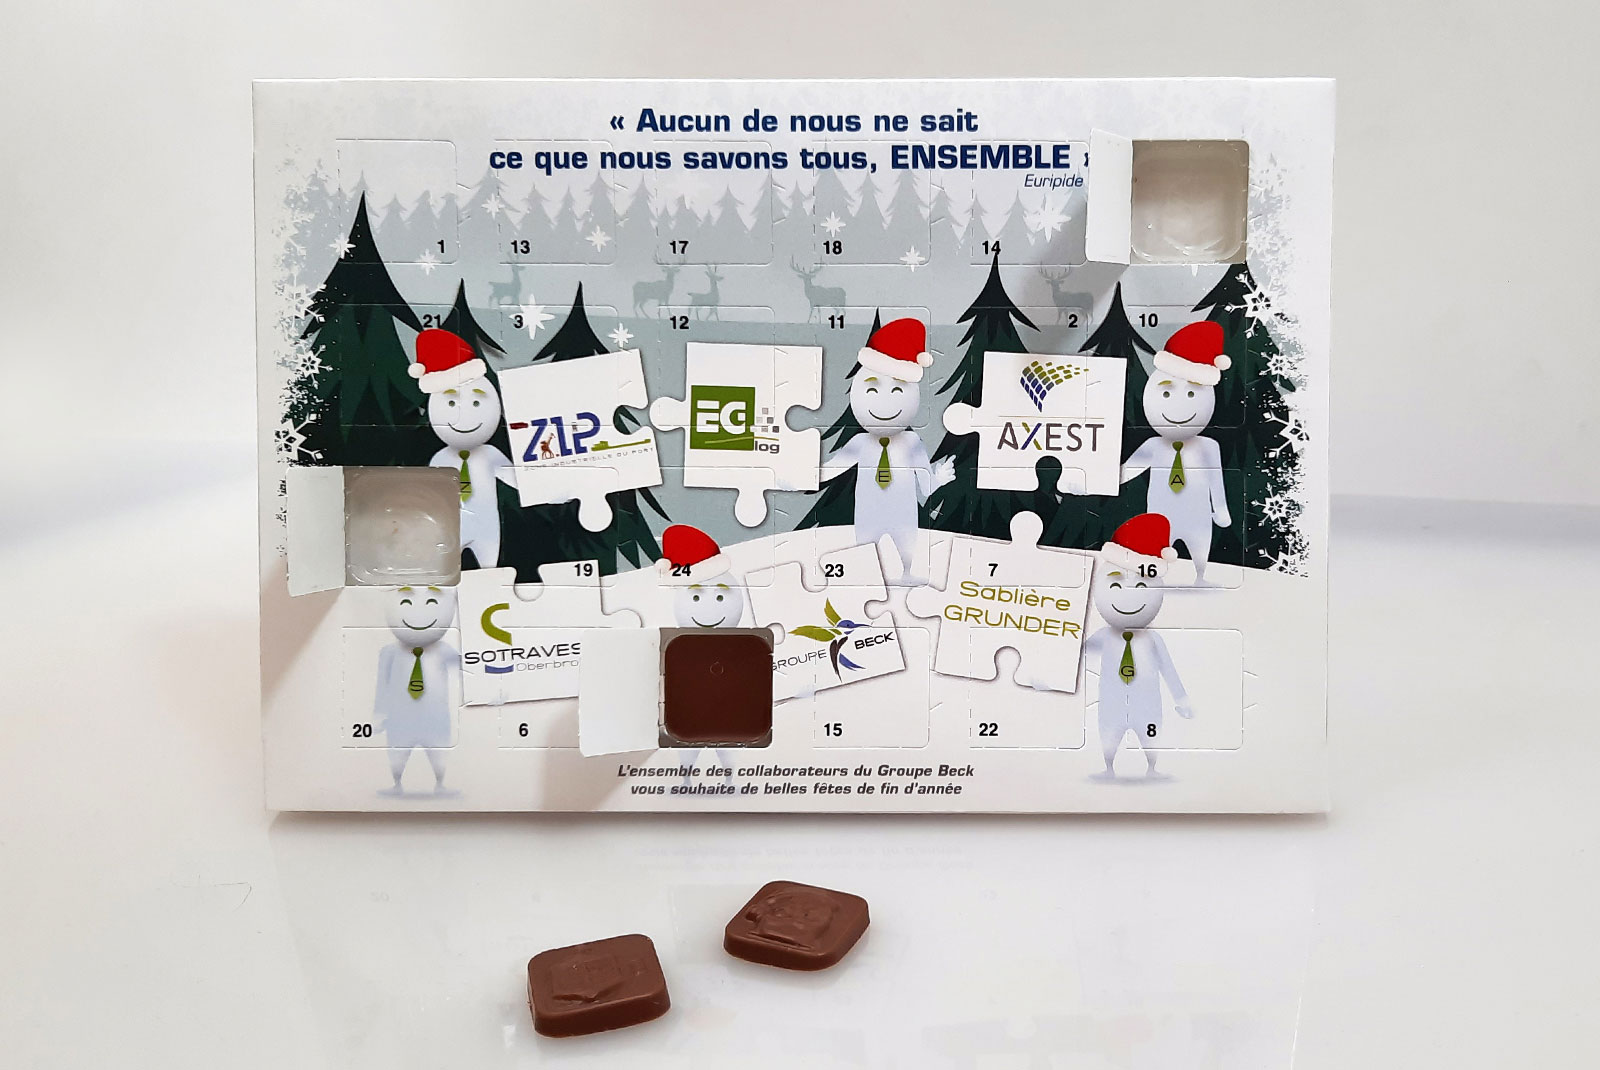 Calendrier avent Sotravest